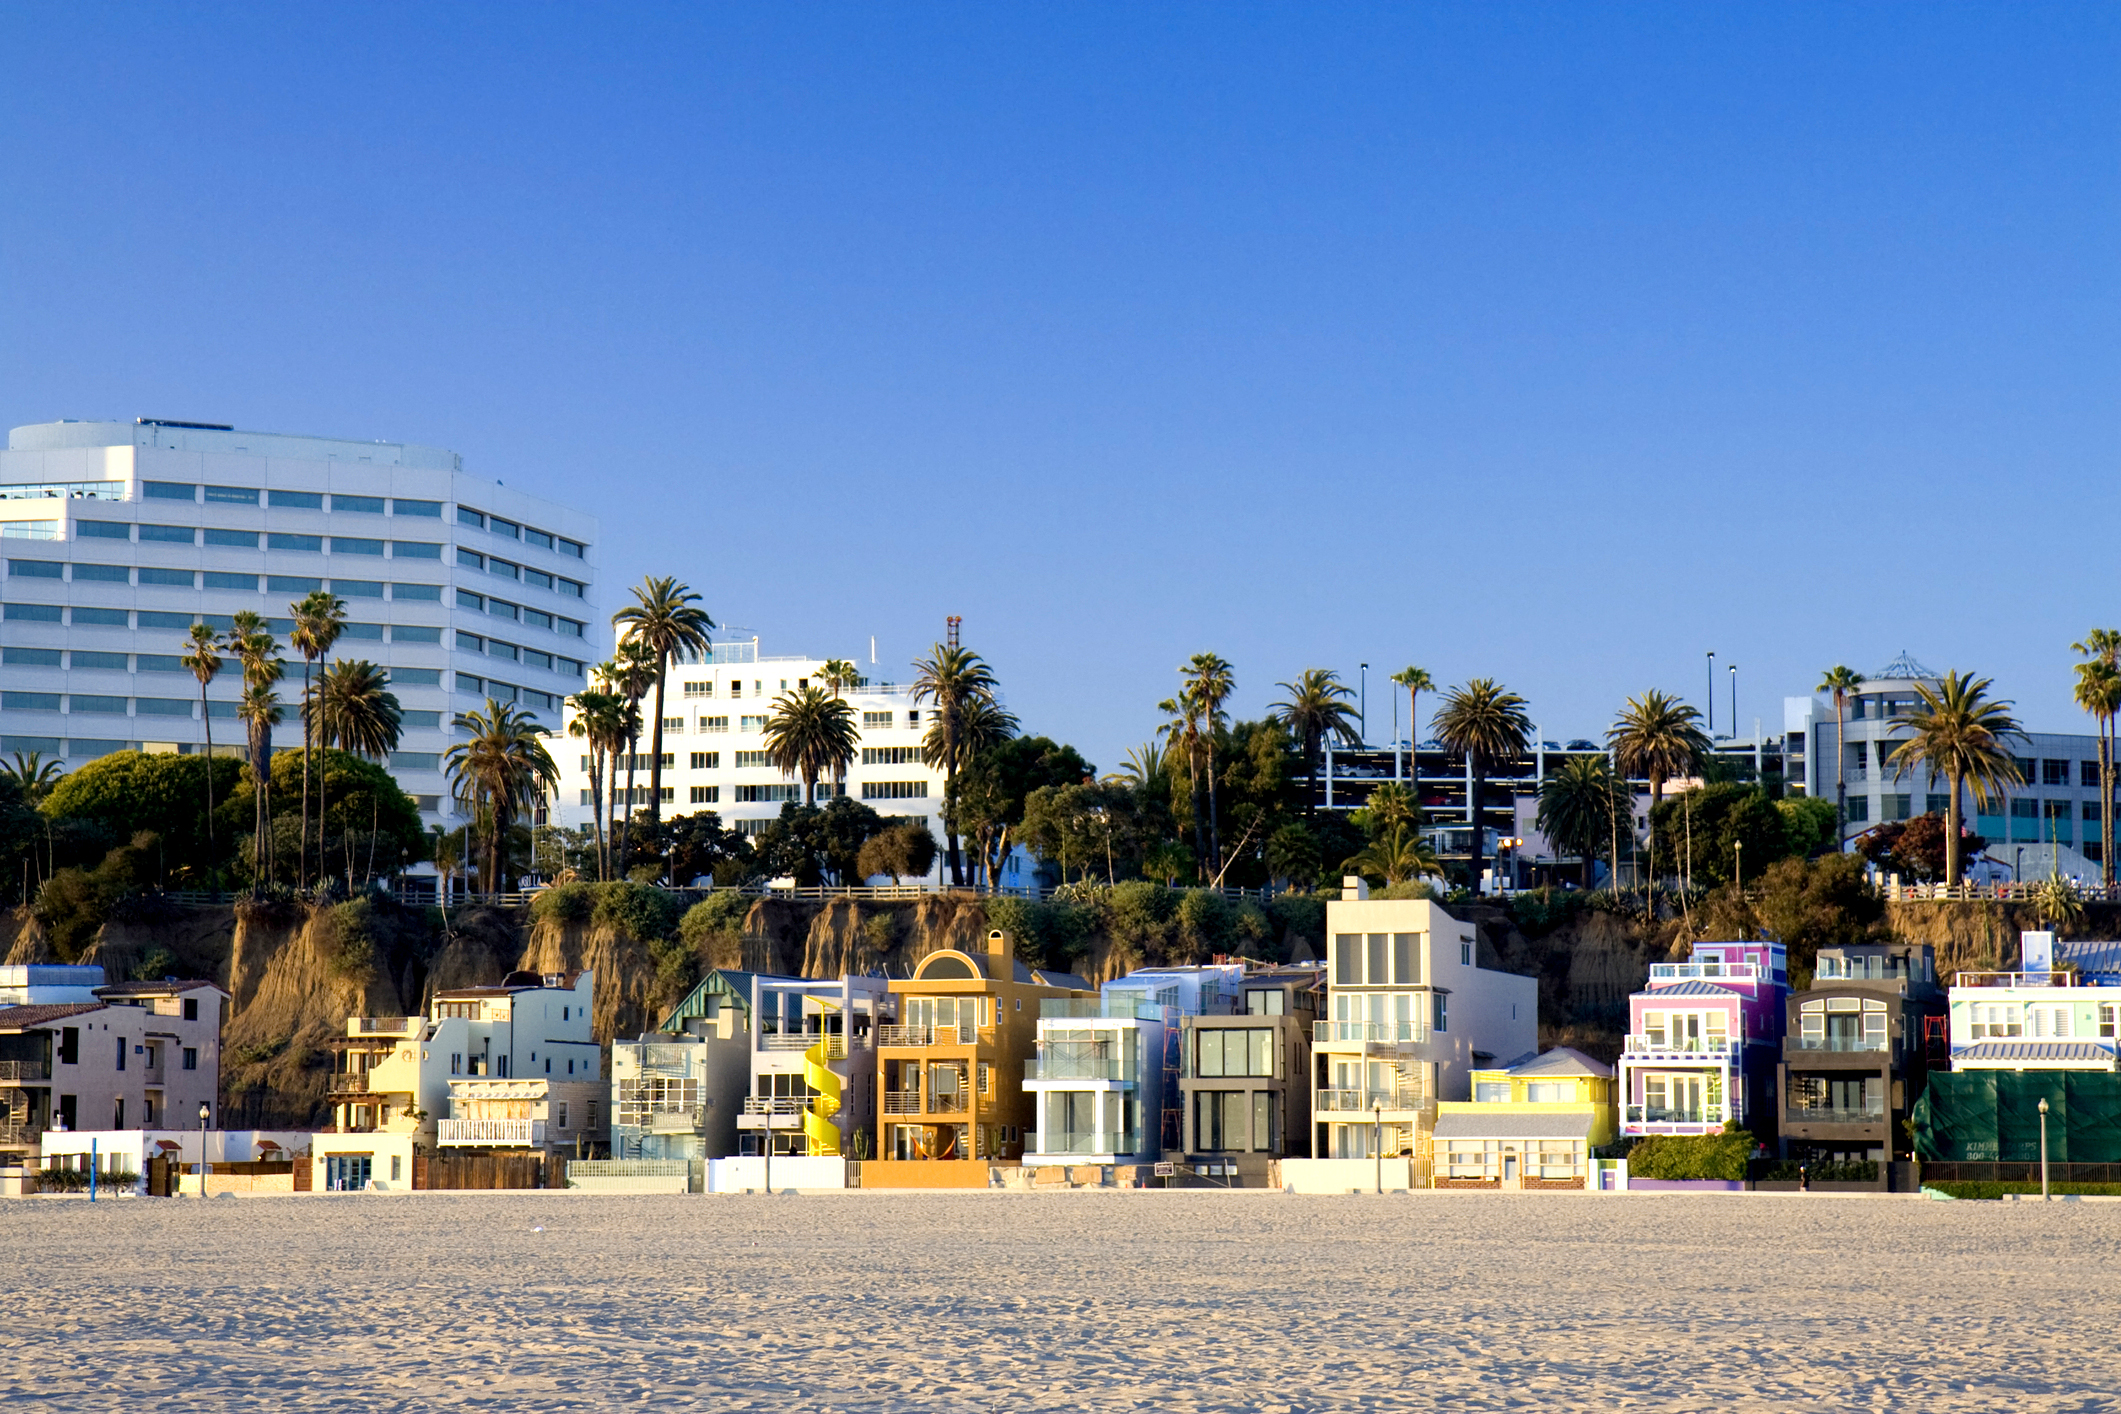 los-angeles-california-beach-house.jpeg?mtime=20140808143246#asset:30180